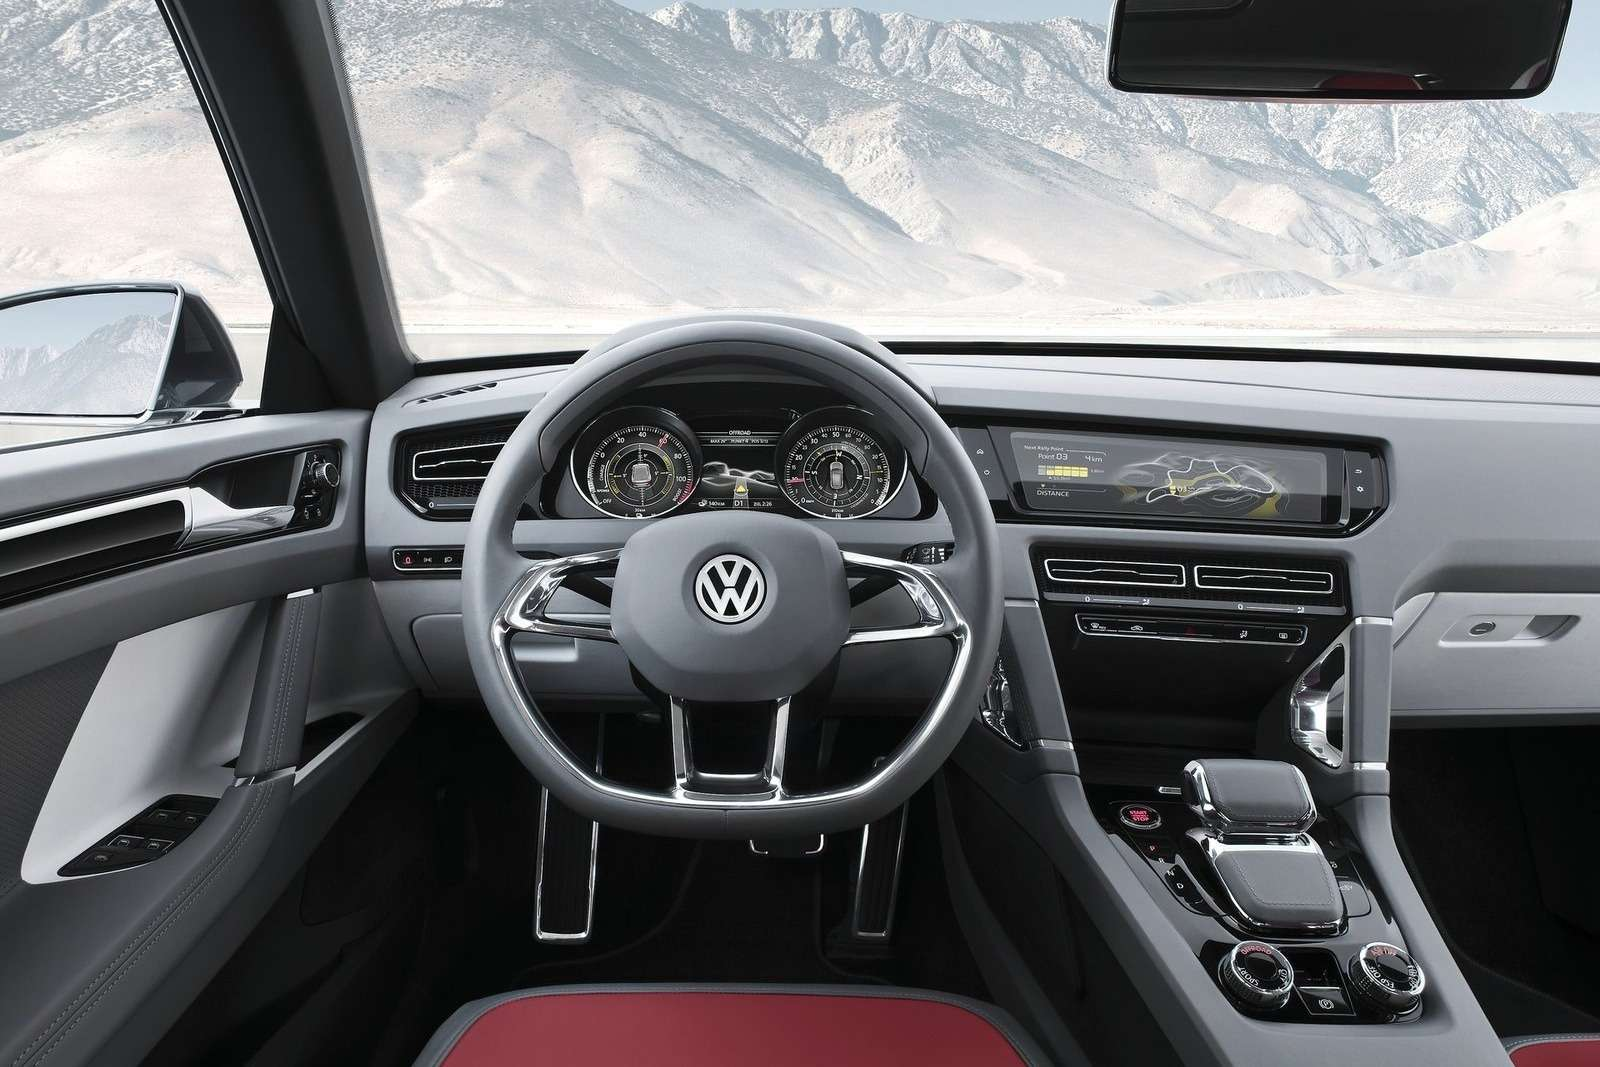 Volkswagen-Cross_Coupe_Concept_2011_1600x1200_wallpaper_14